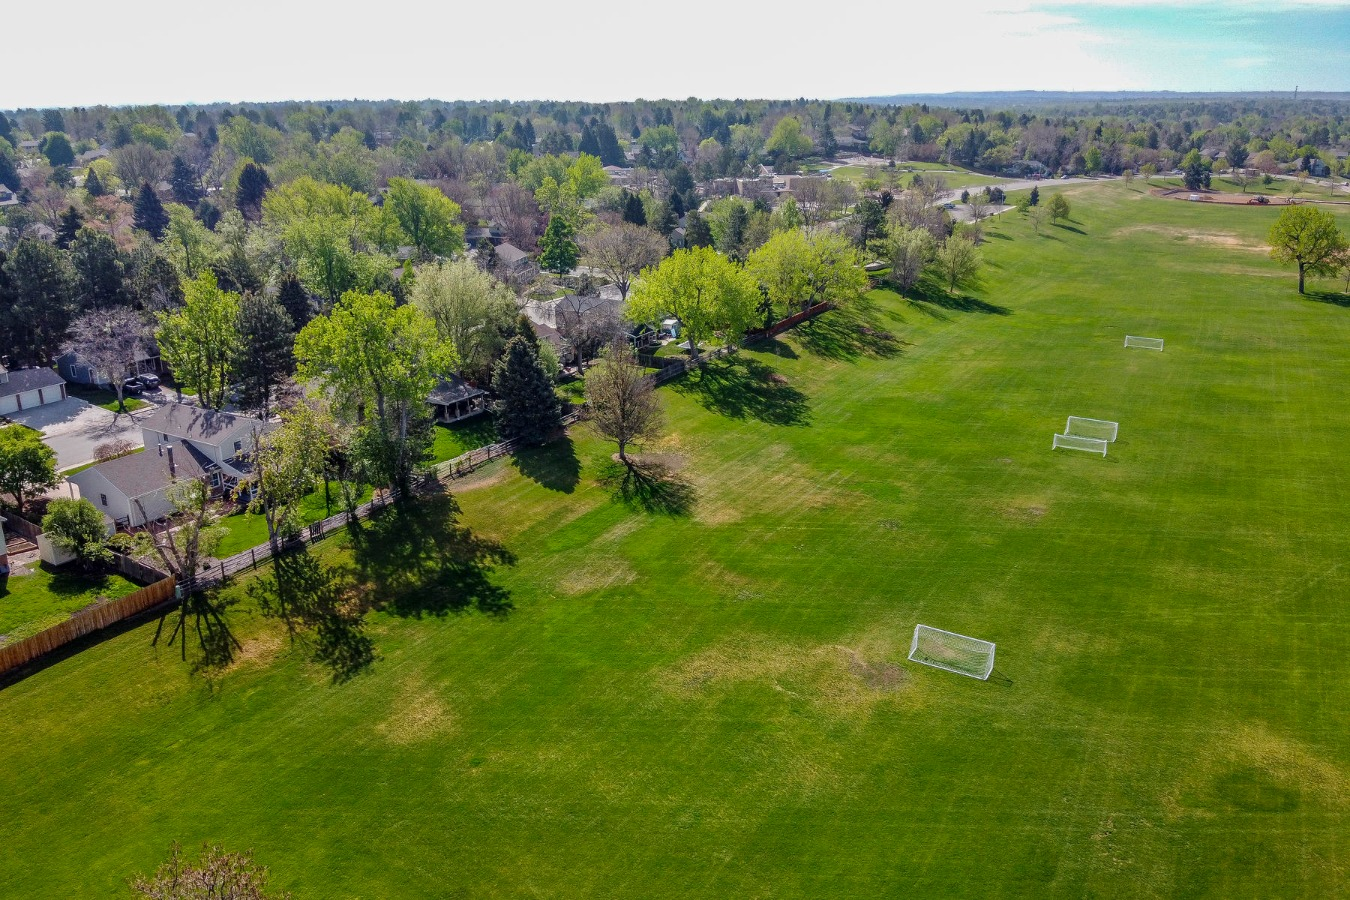 Home is at Middle Left - Park View from Drone